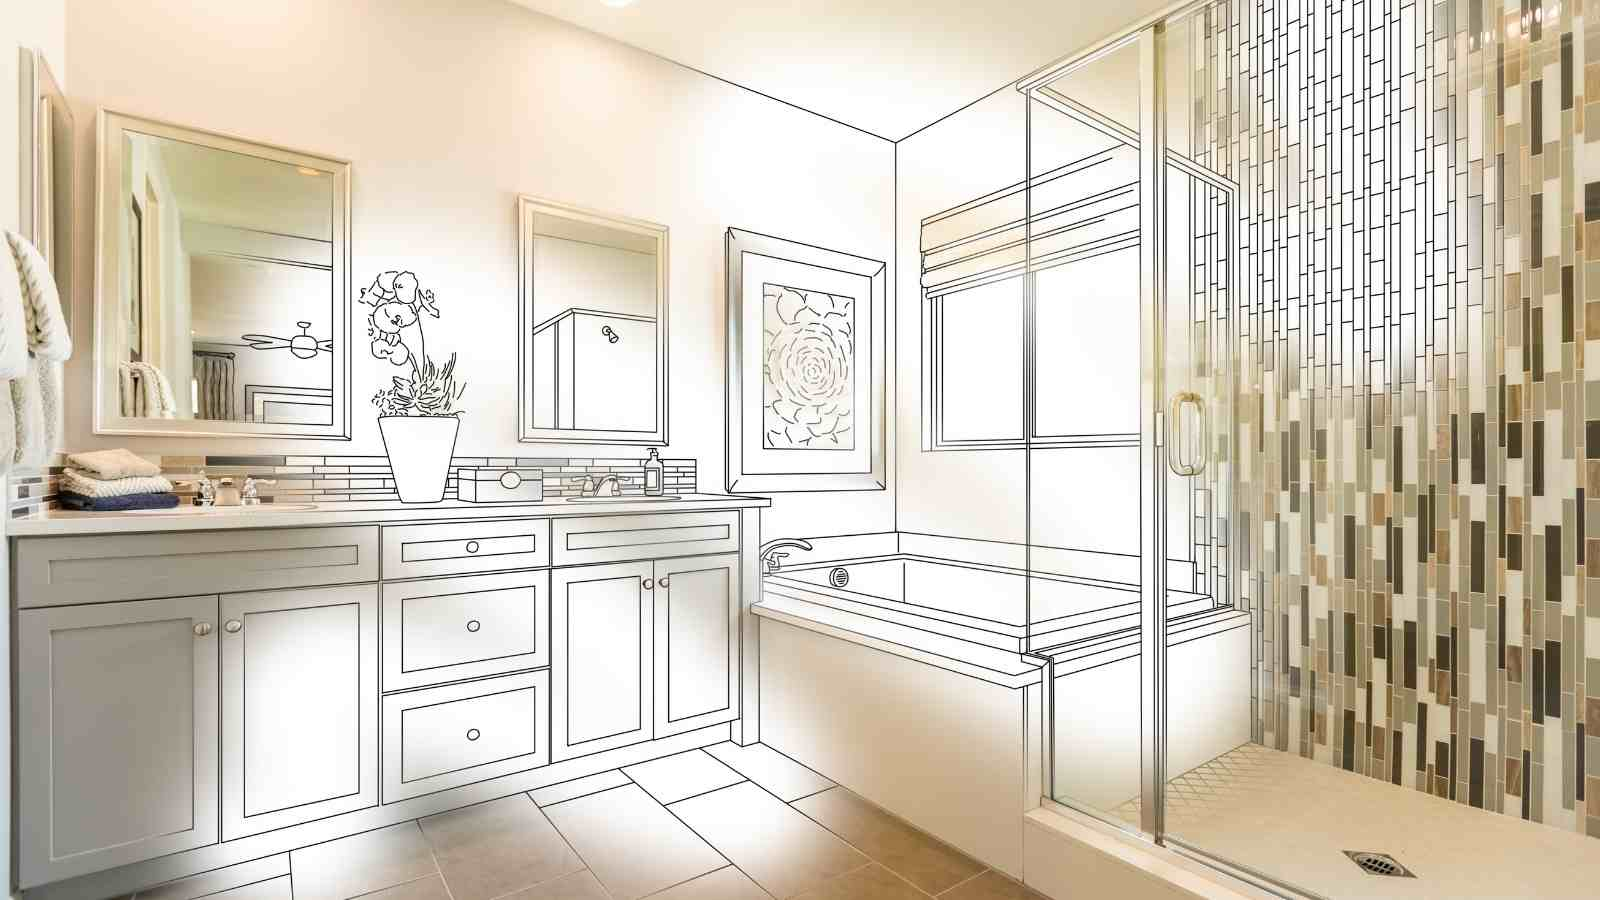 35 amazing bathroom remodel diy ideas that give a stunning for Bath remodel ideas pictures